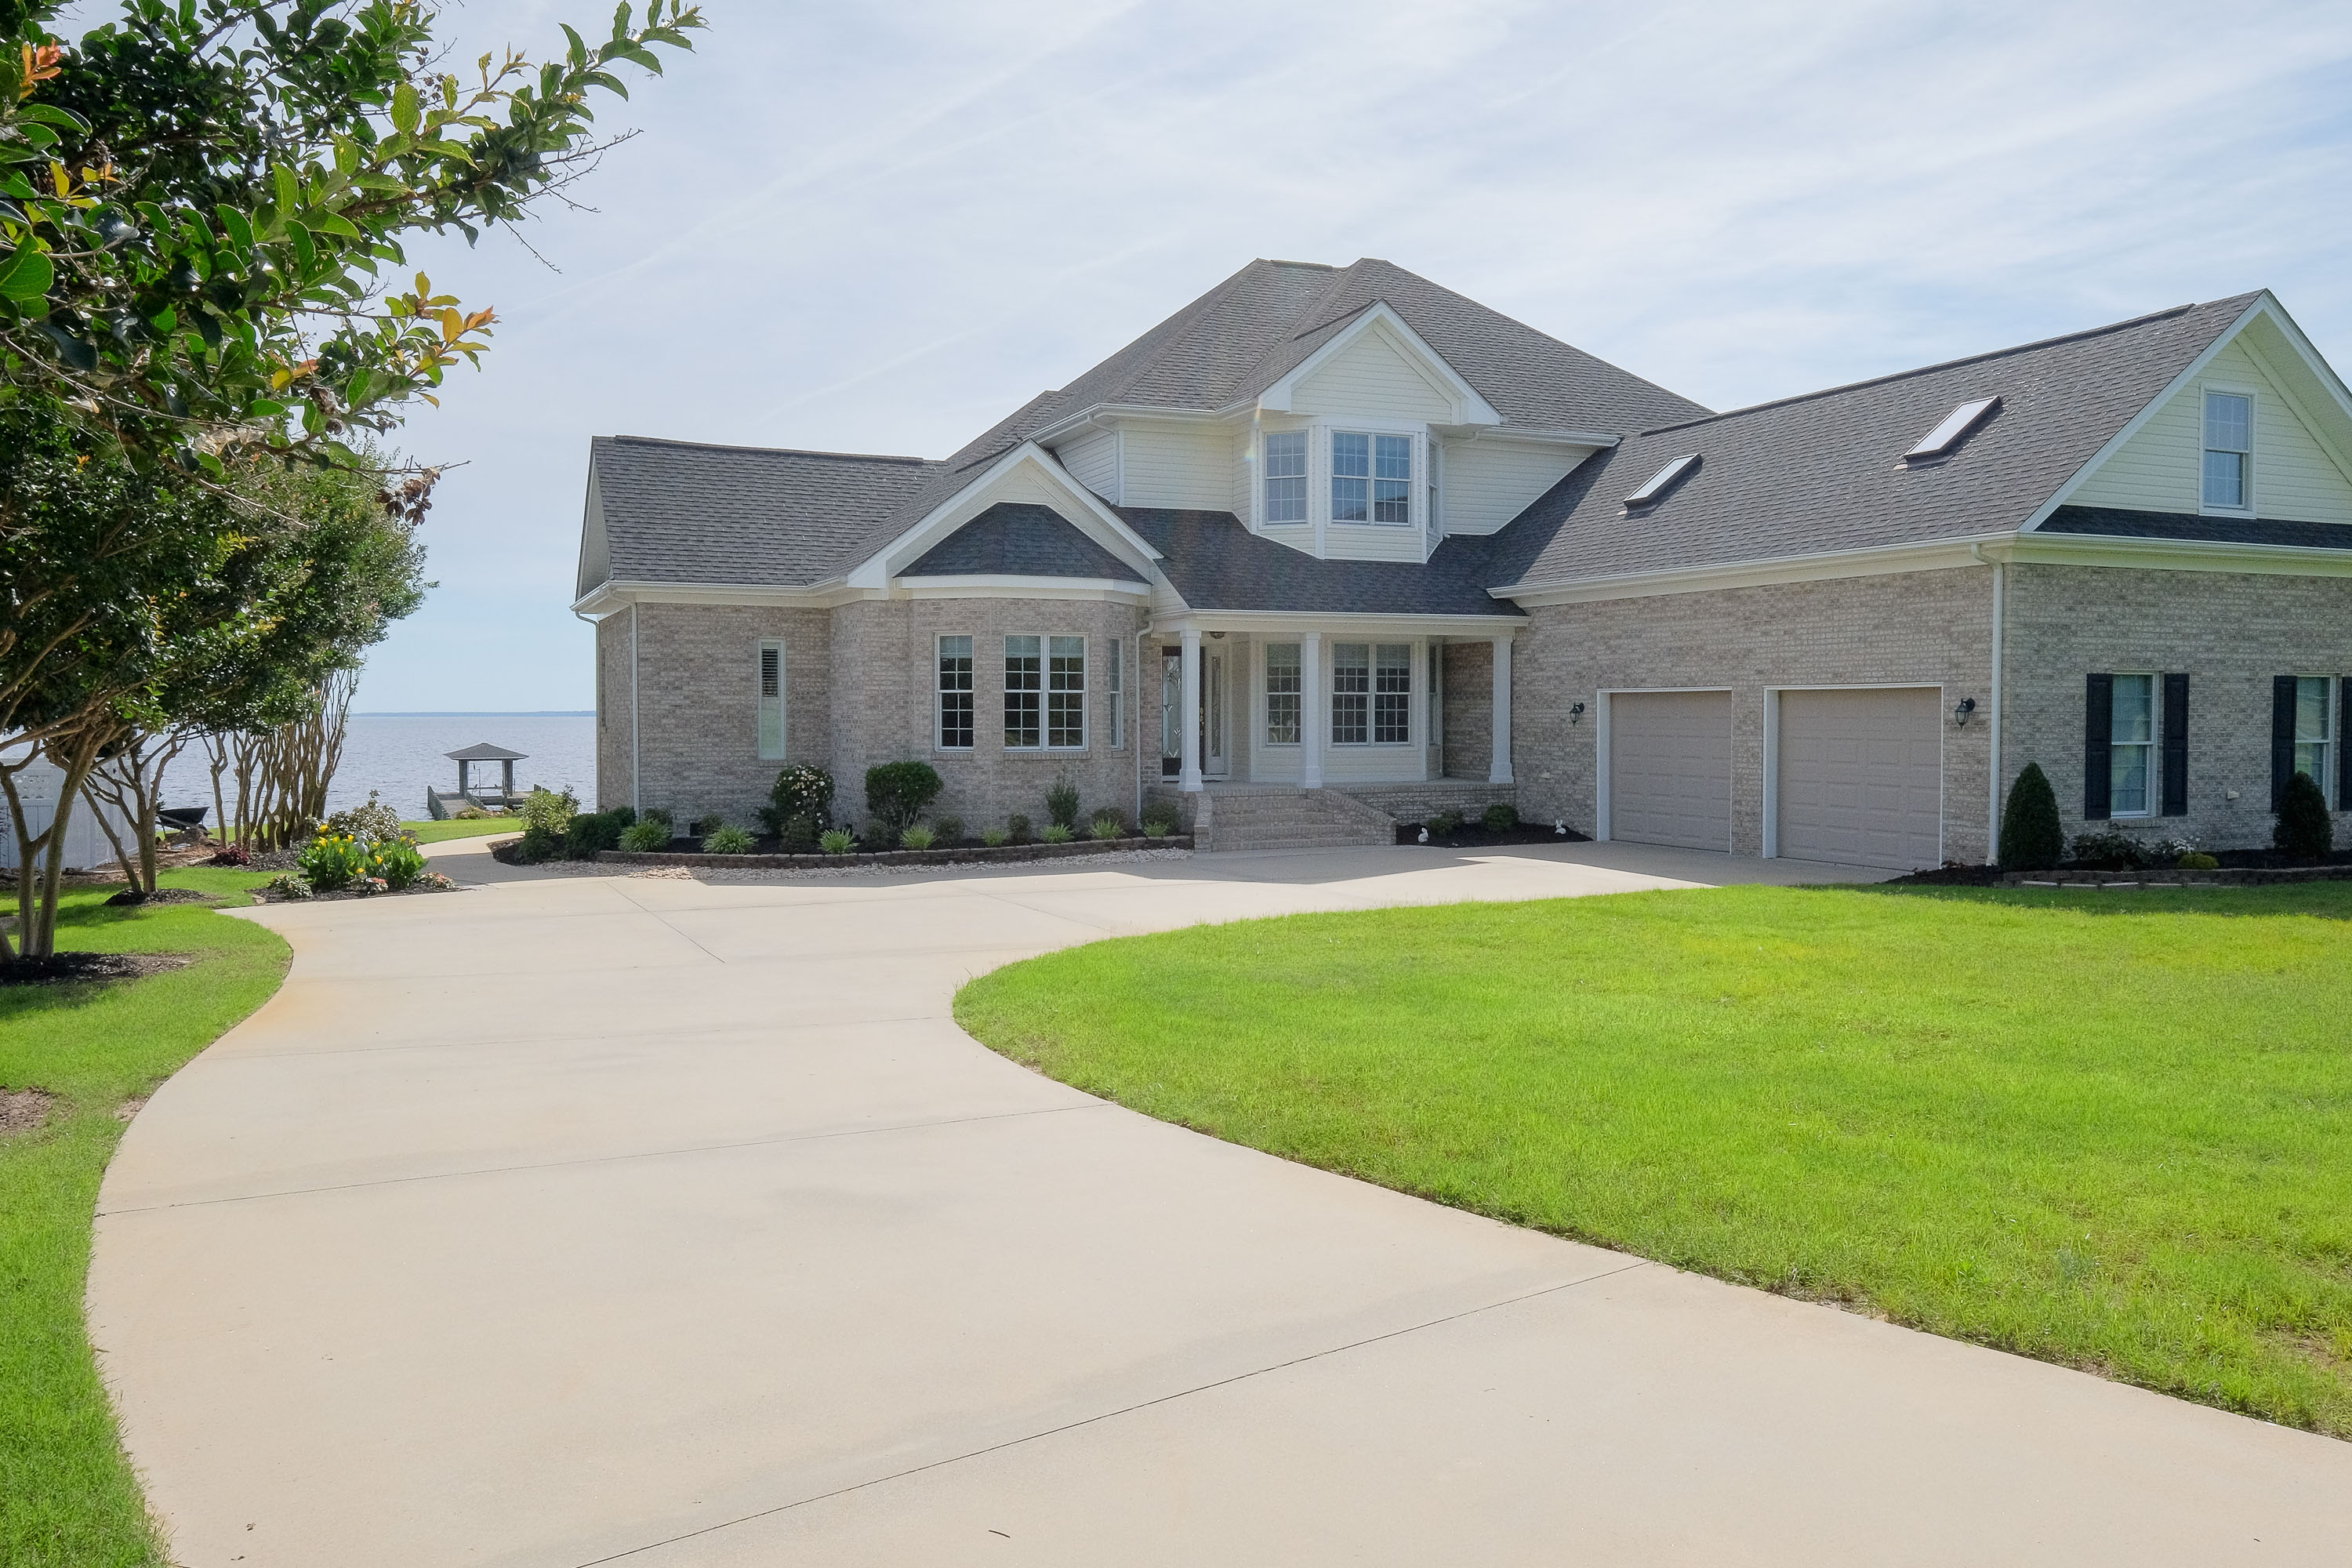 Maison unifamiliale pour l Vente à PRISTINE WATERFRONT 358 Bay Point Dr Edenton, Carolina Du Nord, 27932 États-Unis